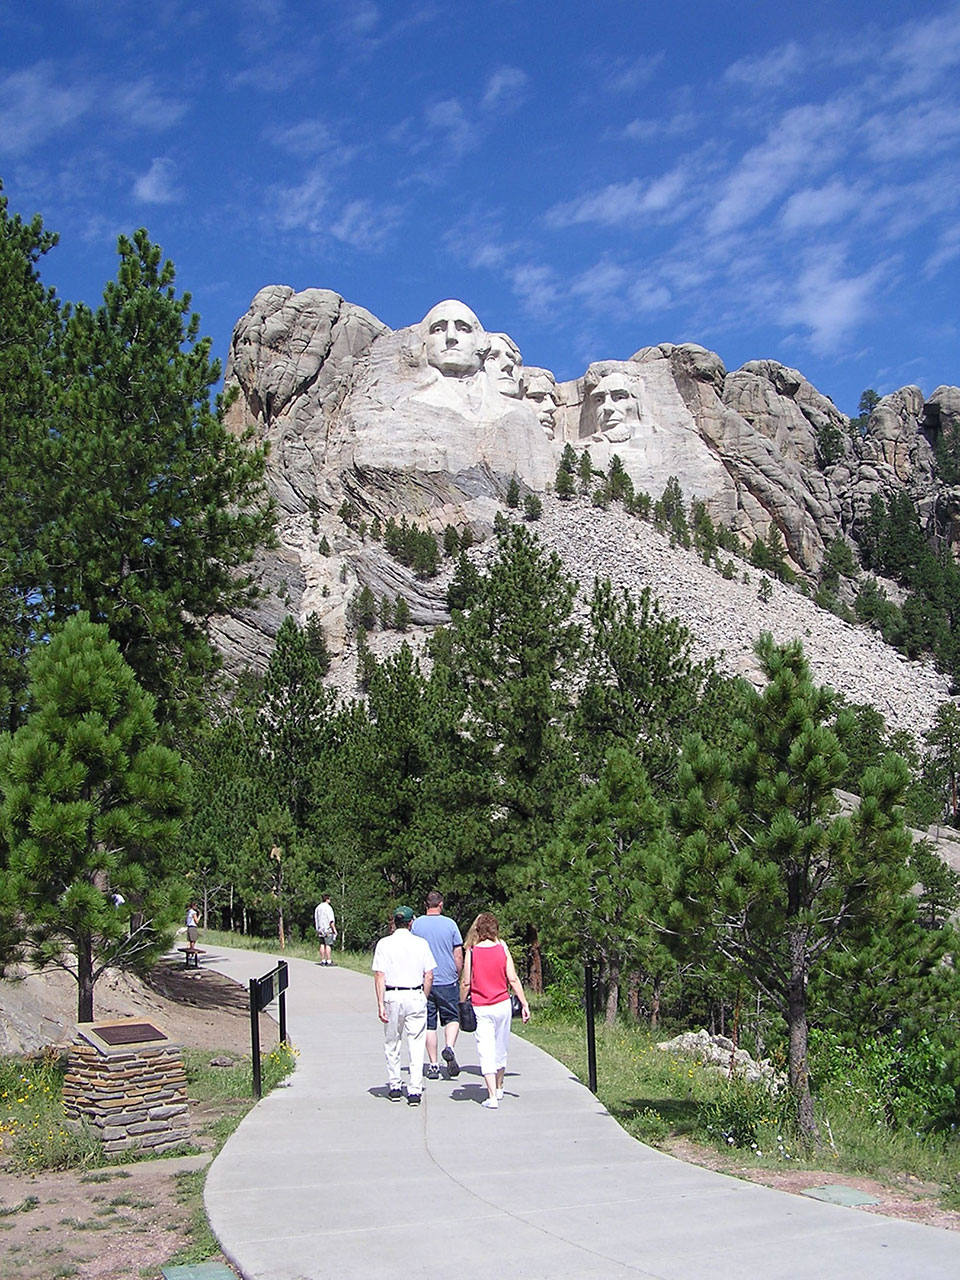 Go Global Trip Things To Do Mount Rushmore National Memorial U S